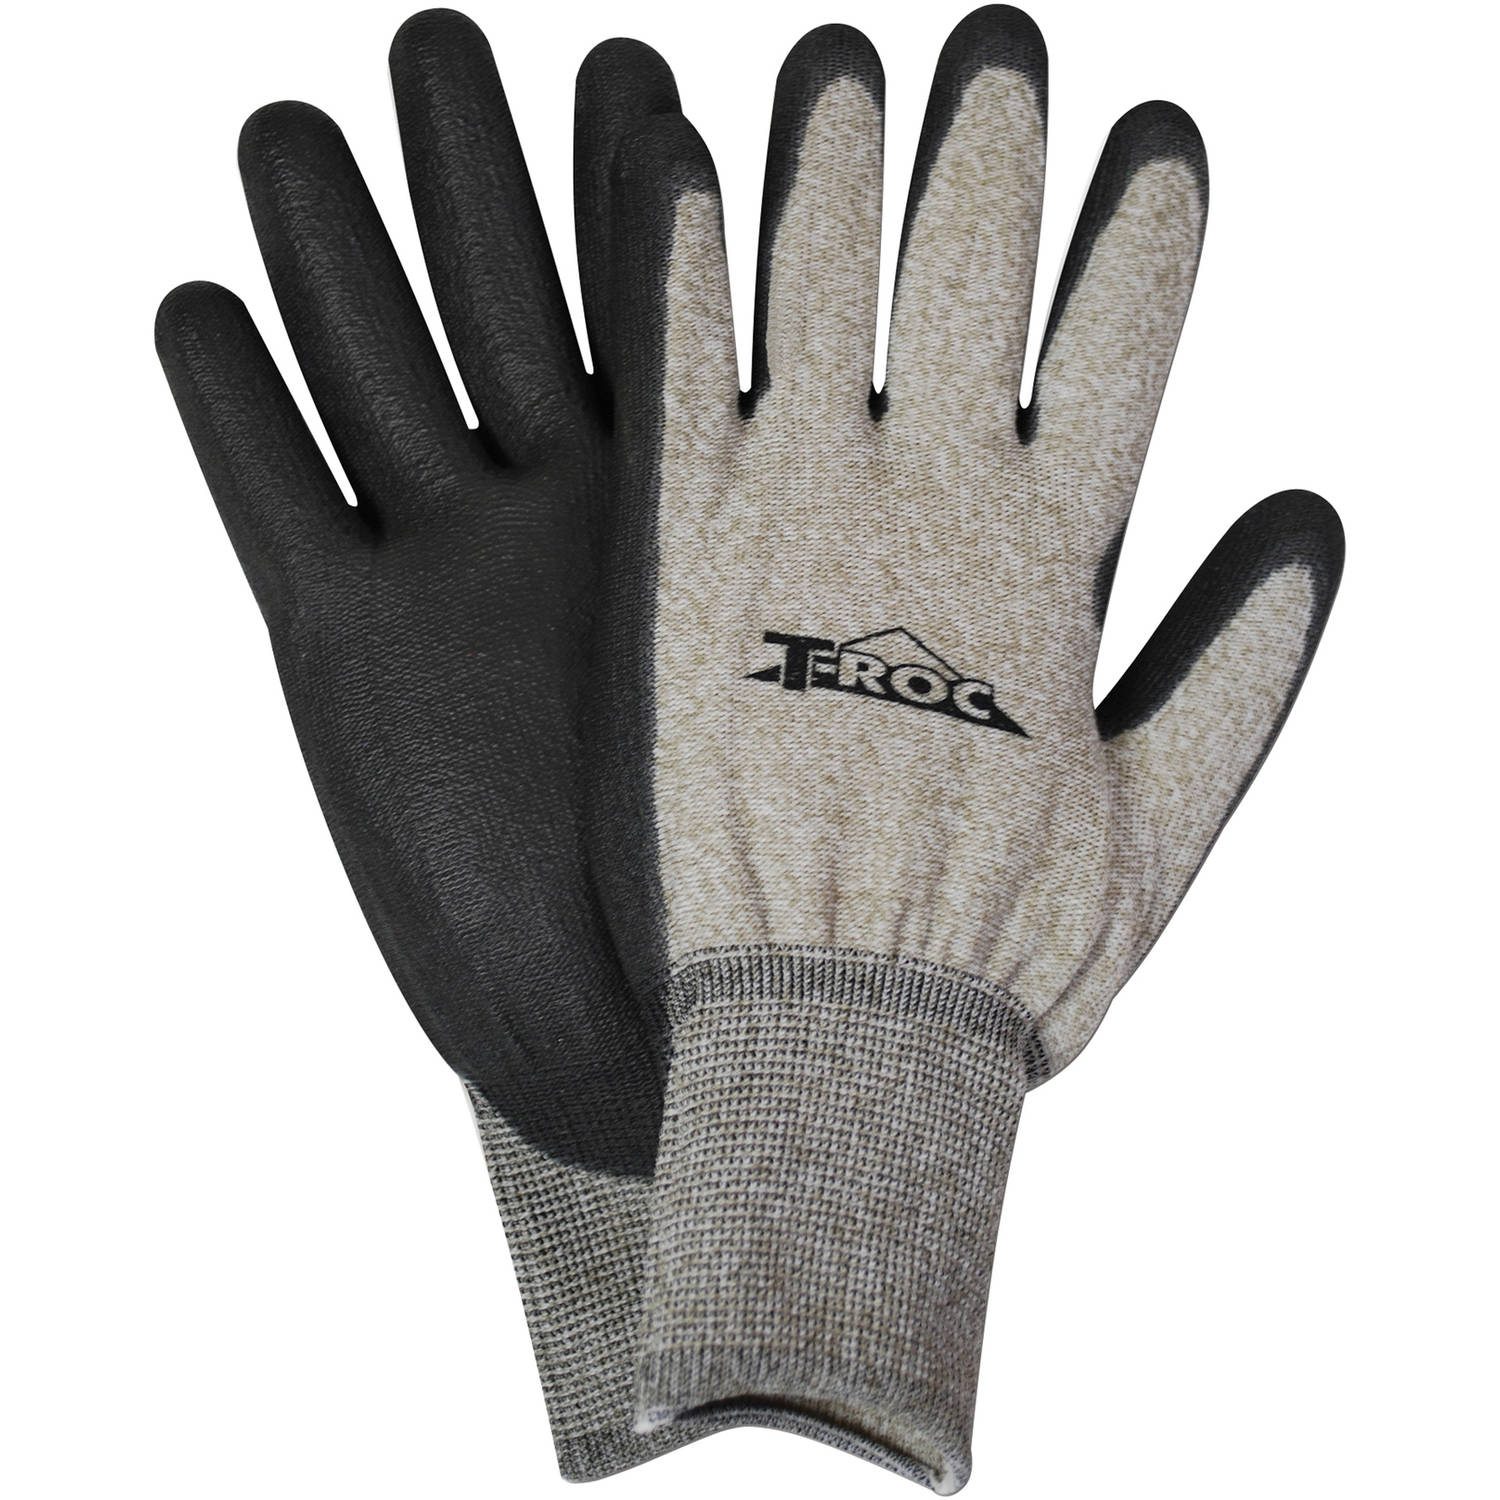 Magid Glove ROC5000TXL Extra Large ROC Touchscreen Gloves